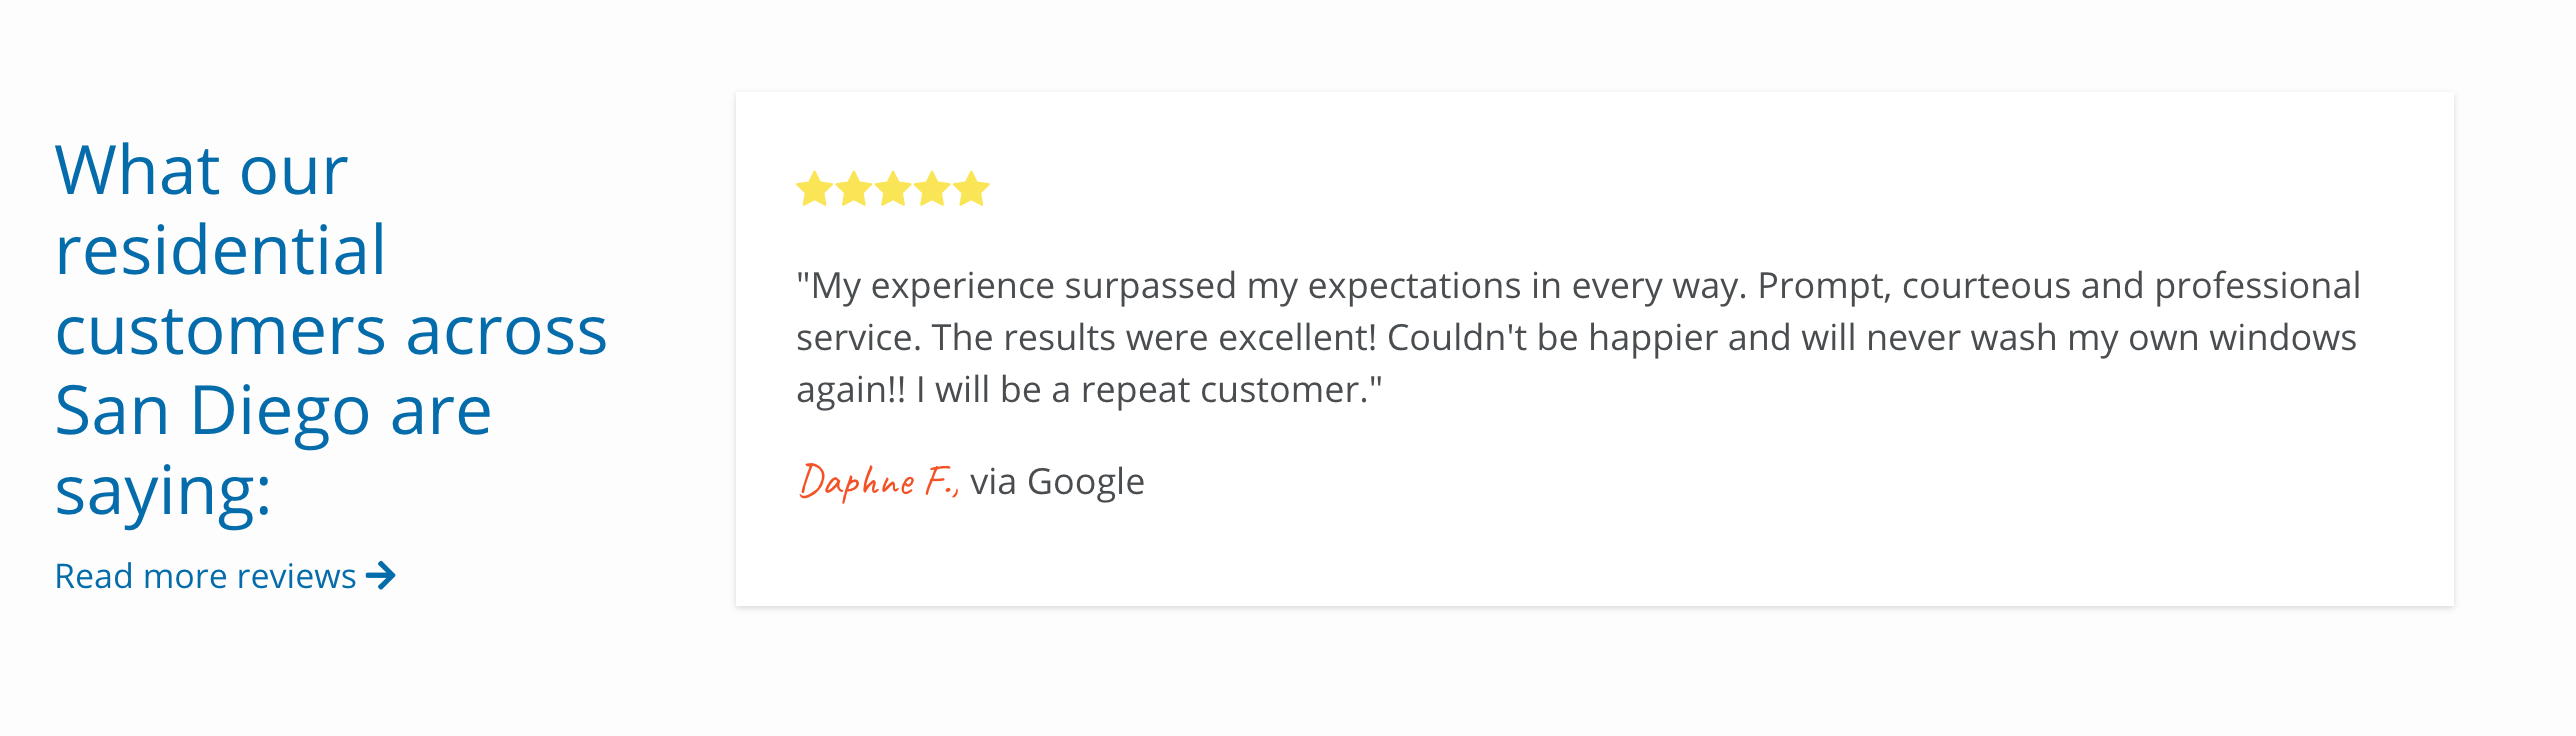 Screen shot of a review used on a Convert website